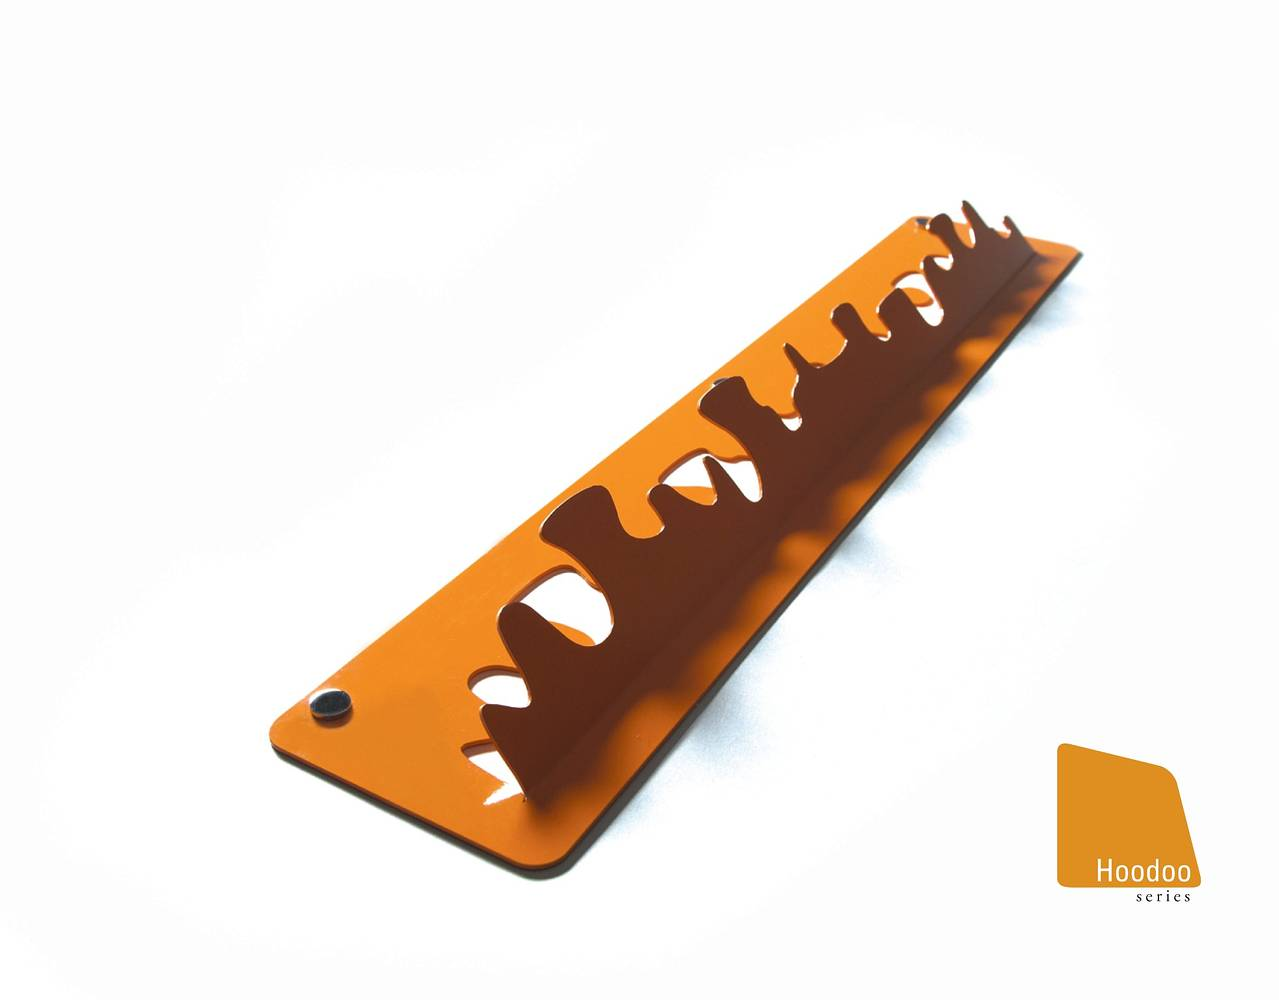 Hoodoo Rack Orange by Shoko Cesar